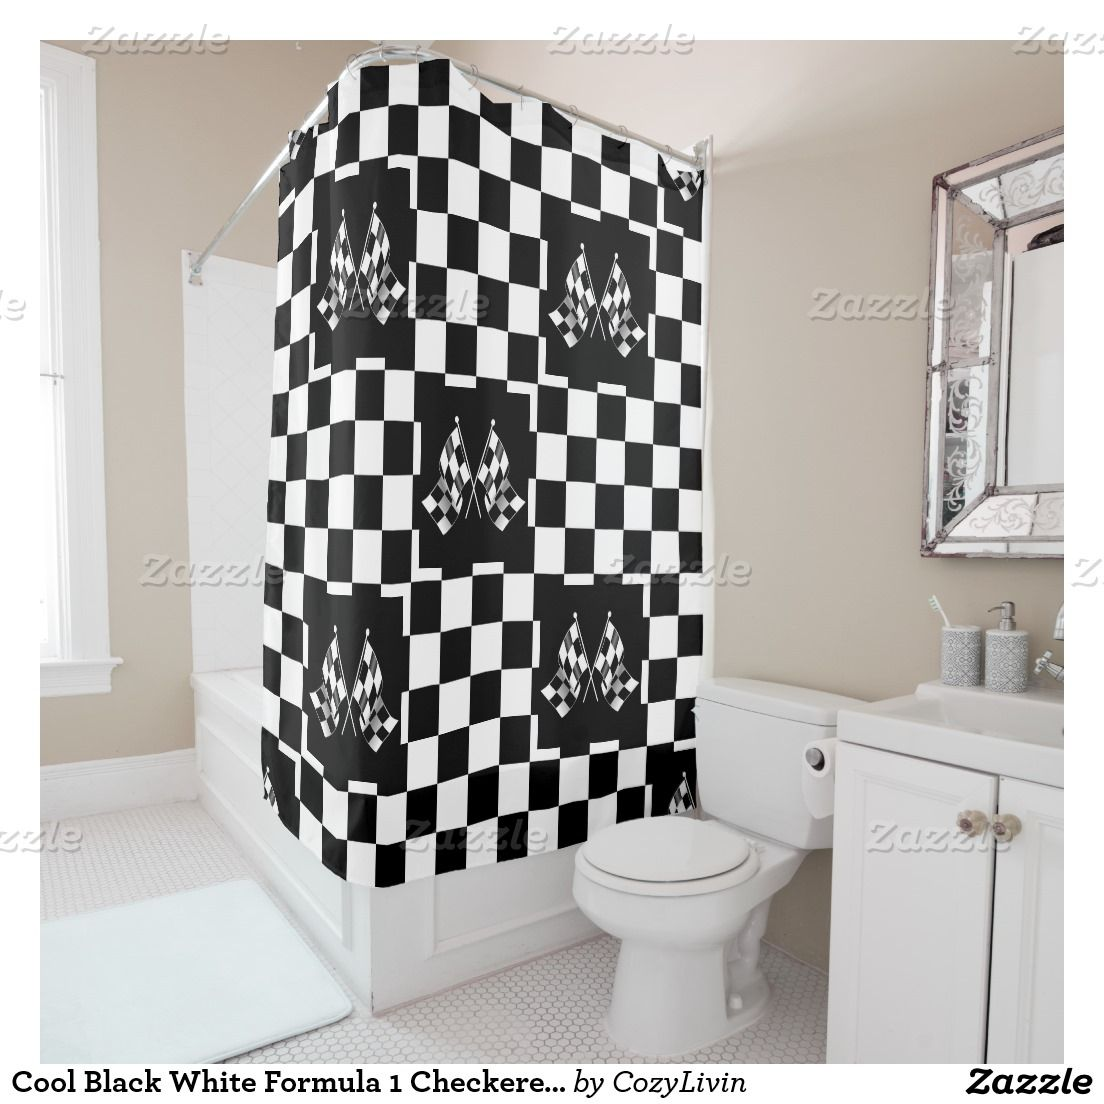 Cool Black White Formula Checkered Flags Pattern Shower Curtain - Black and white check bath mat for bathroom decorating ideas